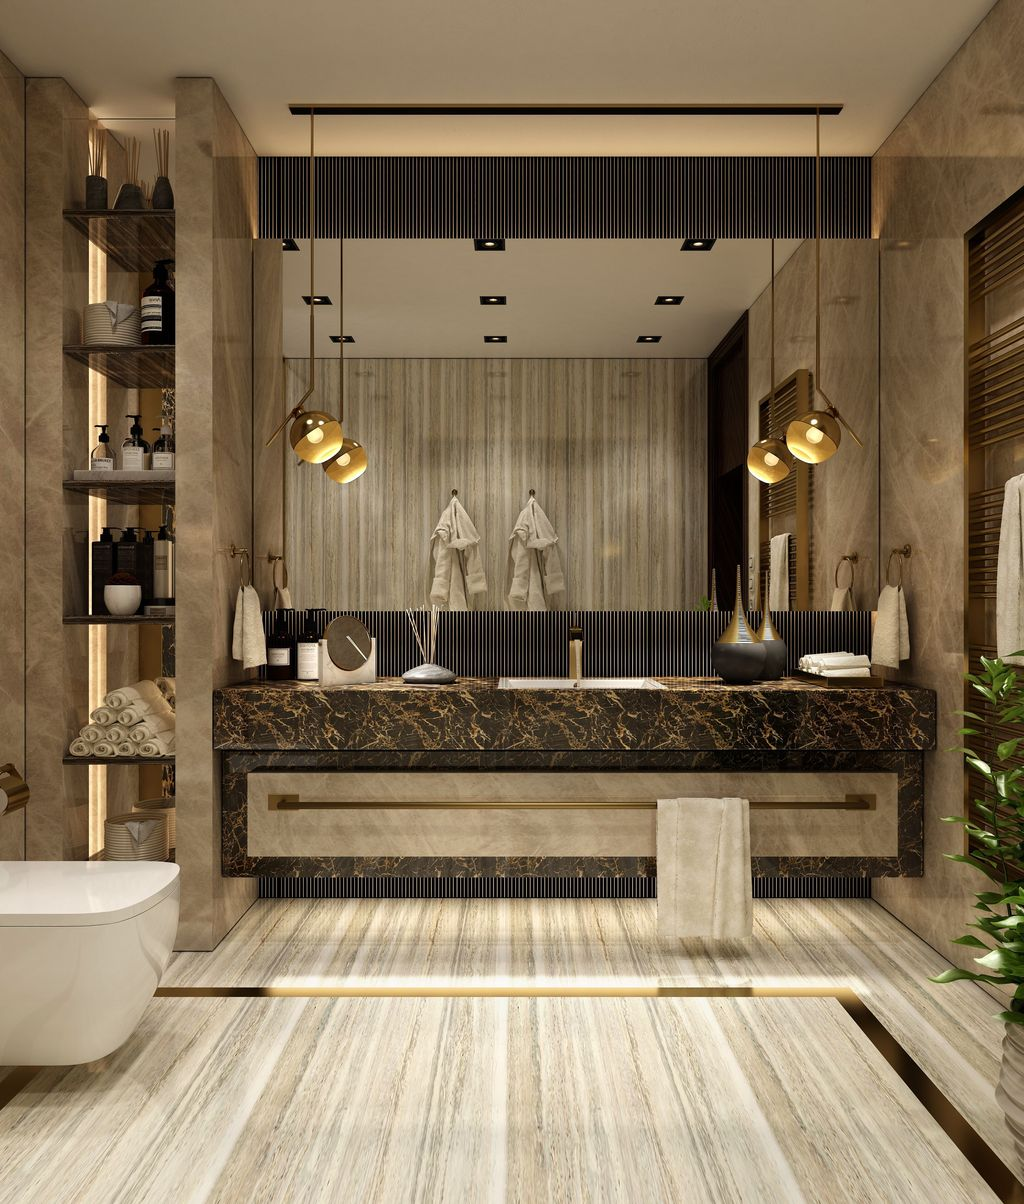 Luxury Bathroom Design And Decor Ideas 02